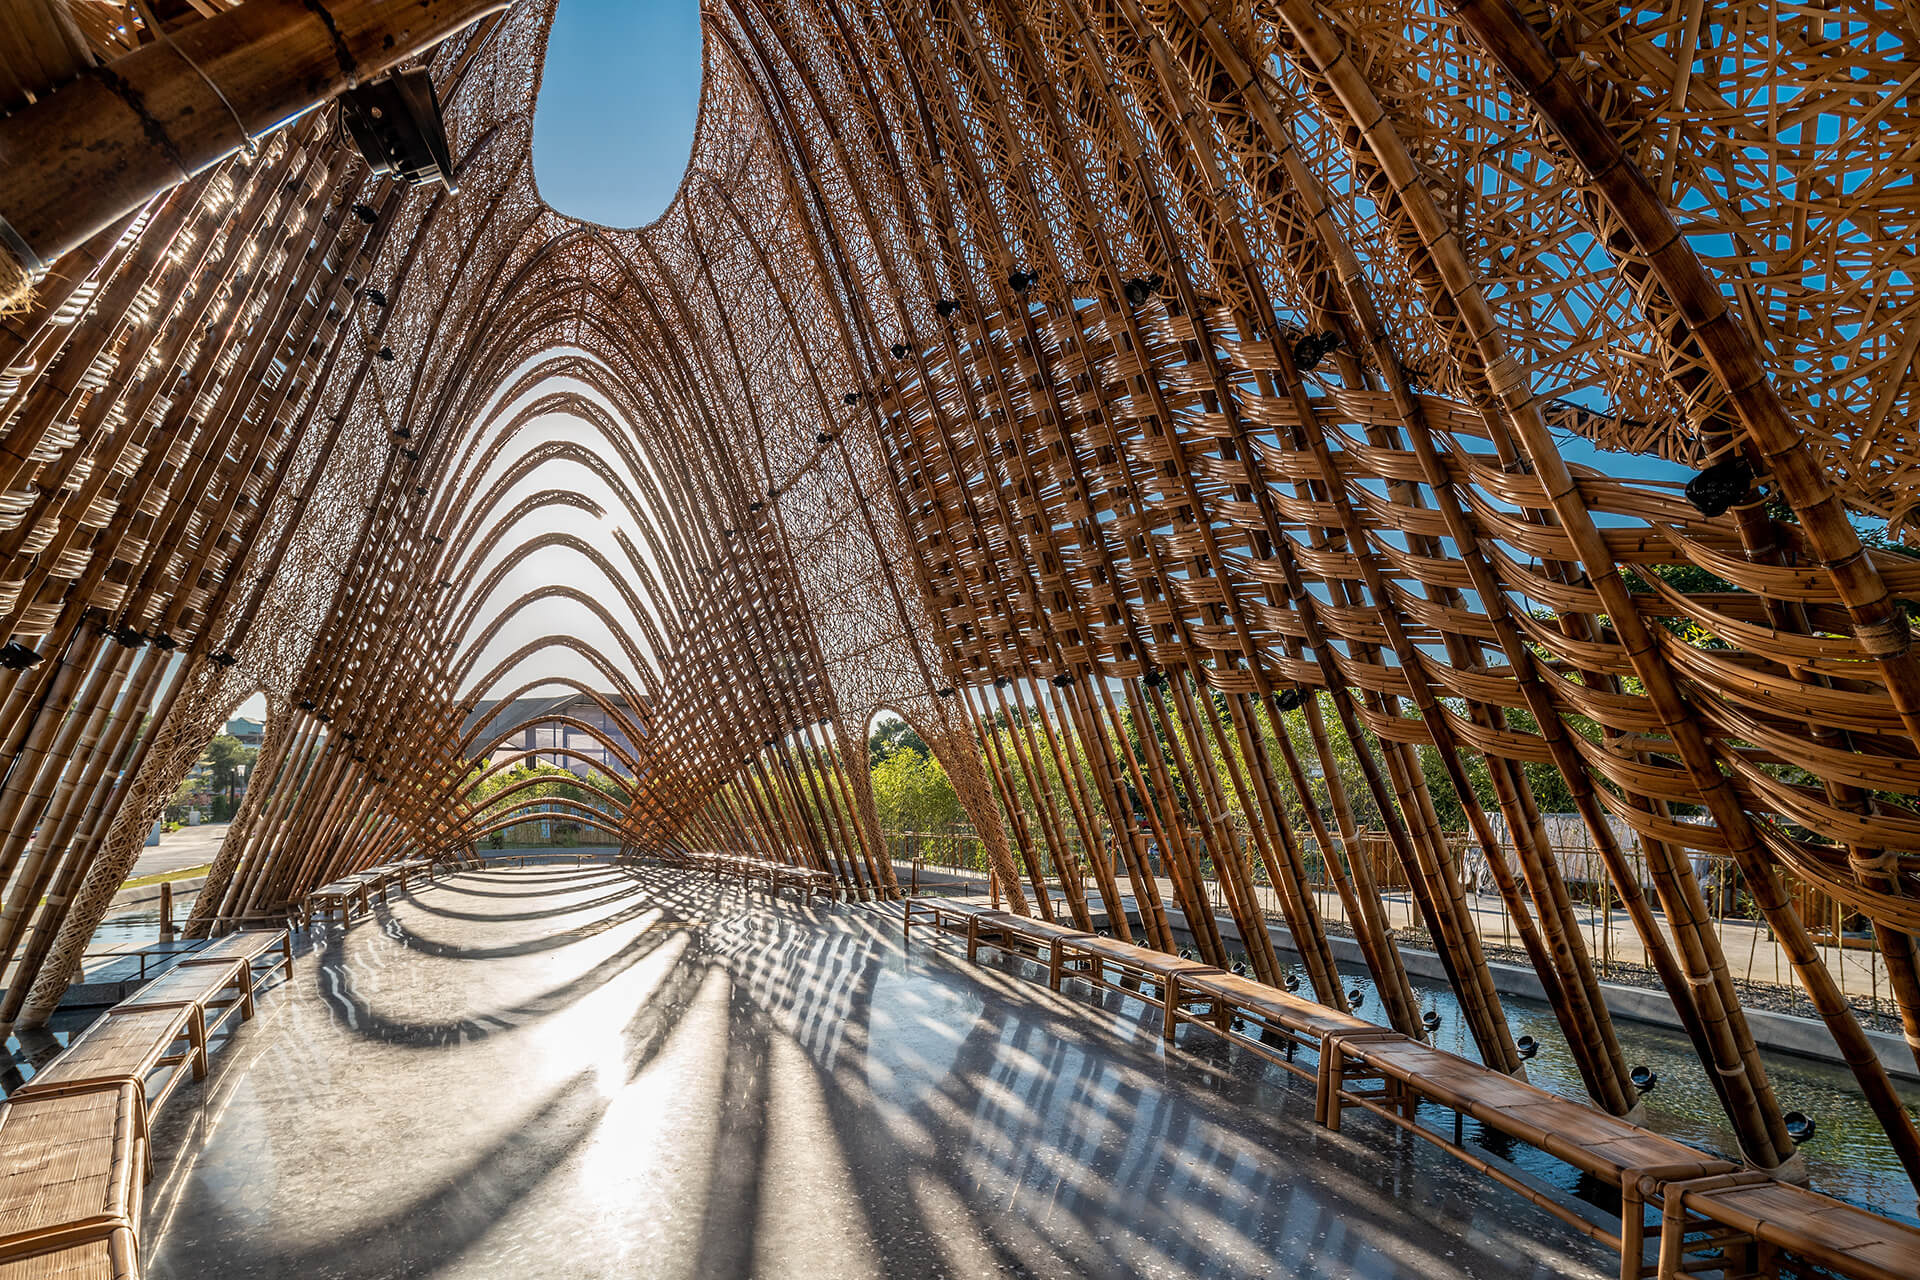 The space inside the pavilion provides an experience akin to a 'walk through the forest' | Zuo Studio creates the Bamboo Pavilion for Taichung World Flora Exposition | STIRworld